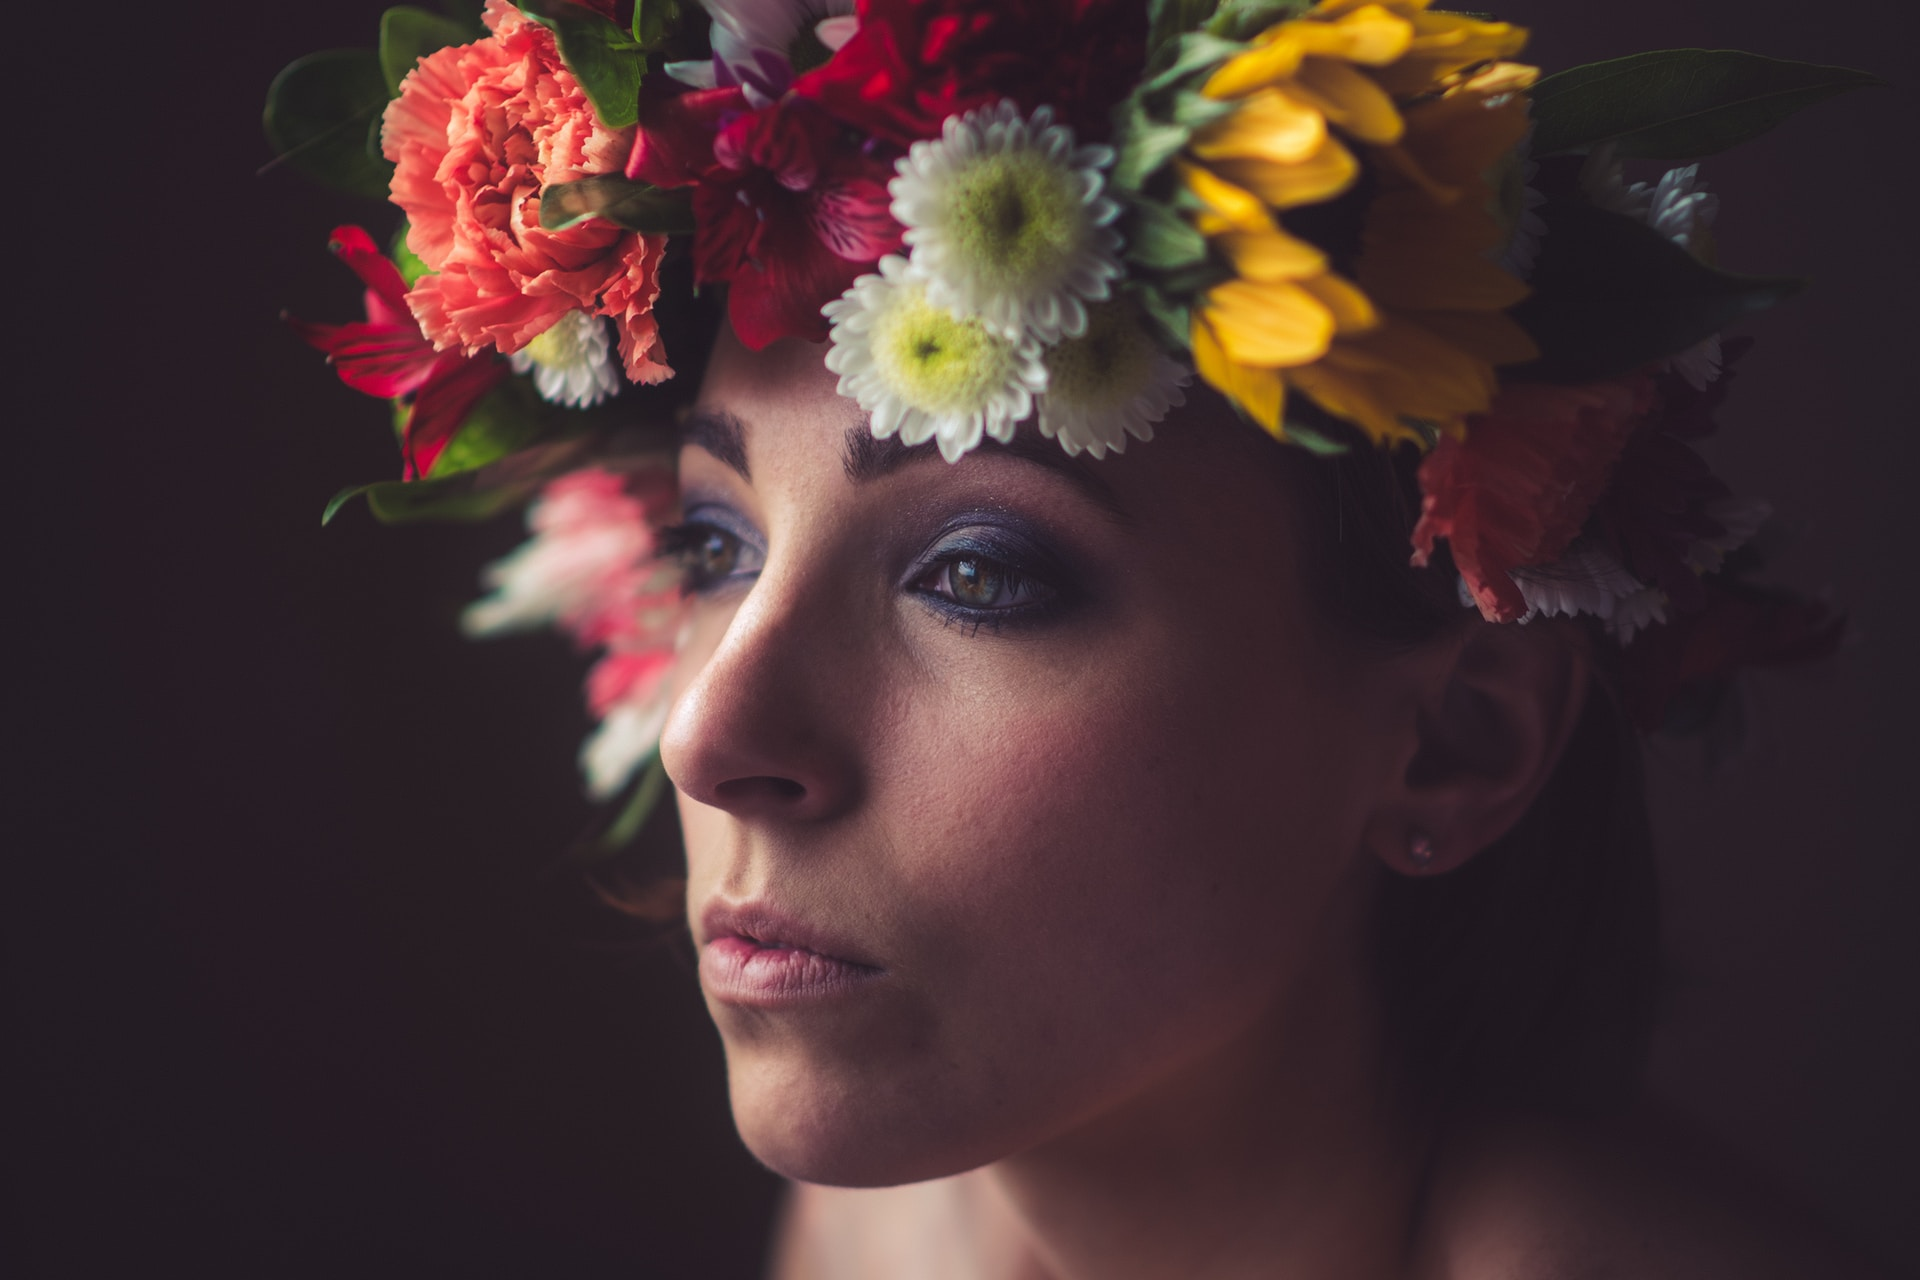 woman with yellow and red flower on her head